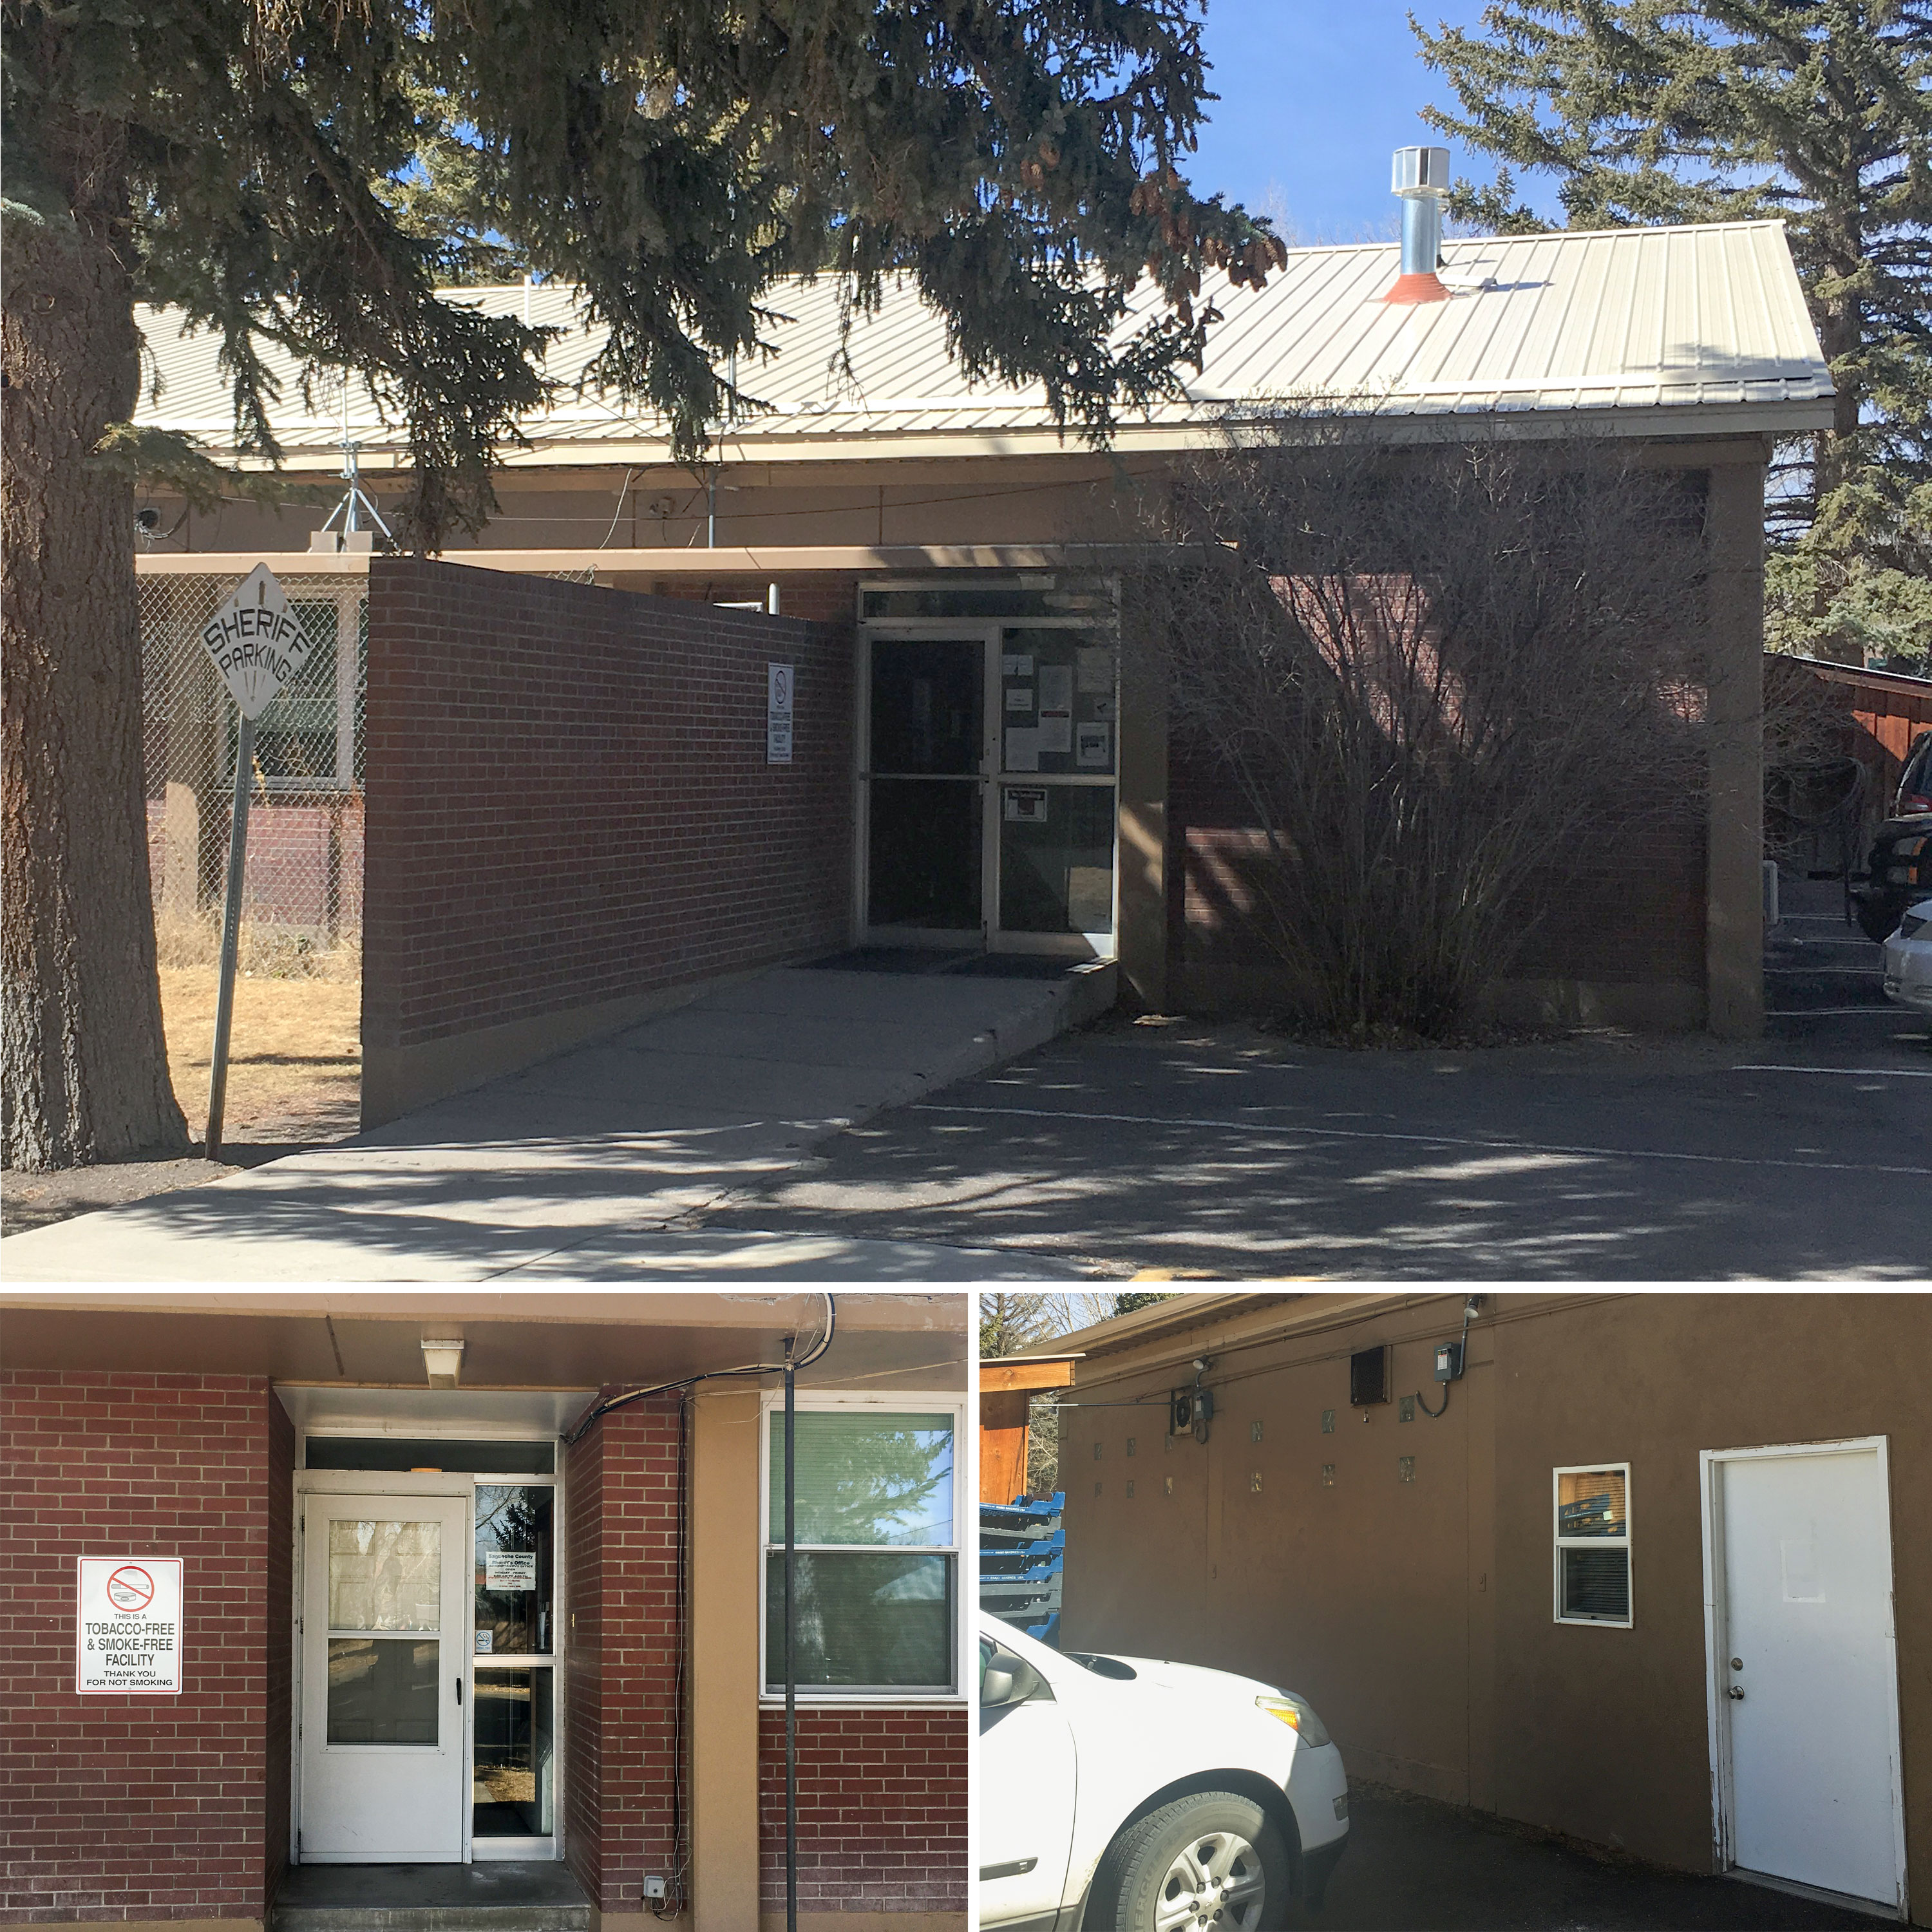 Photo: Saguache Jail 3 | County Jail Bldg - Courtesy